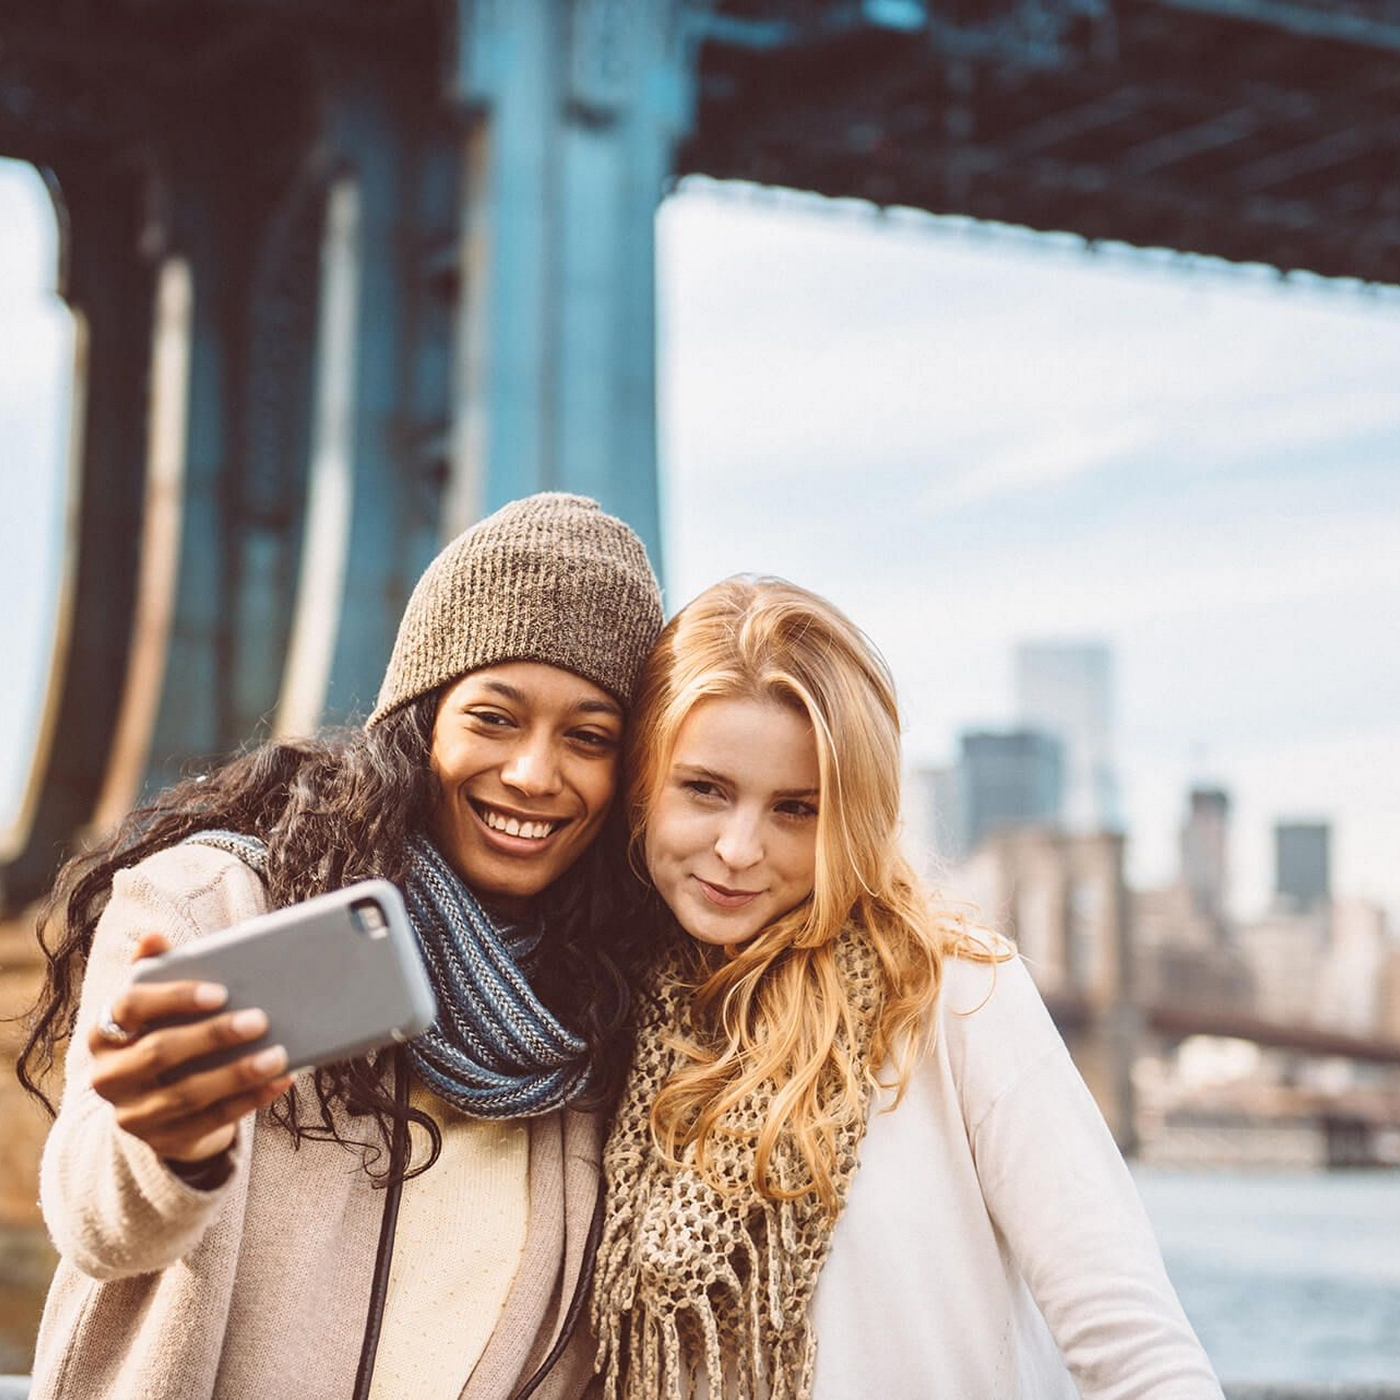 Image of two women taking a photo with city behind them